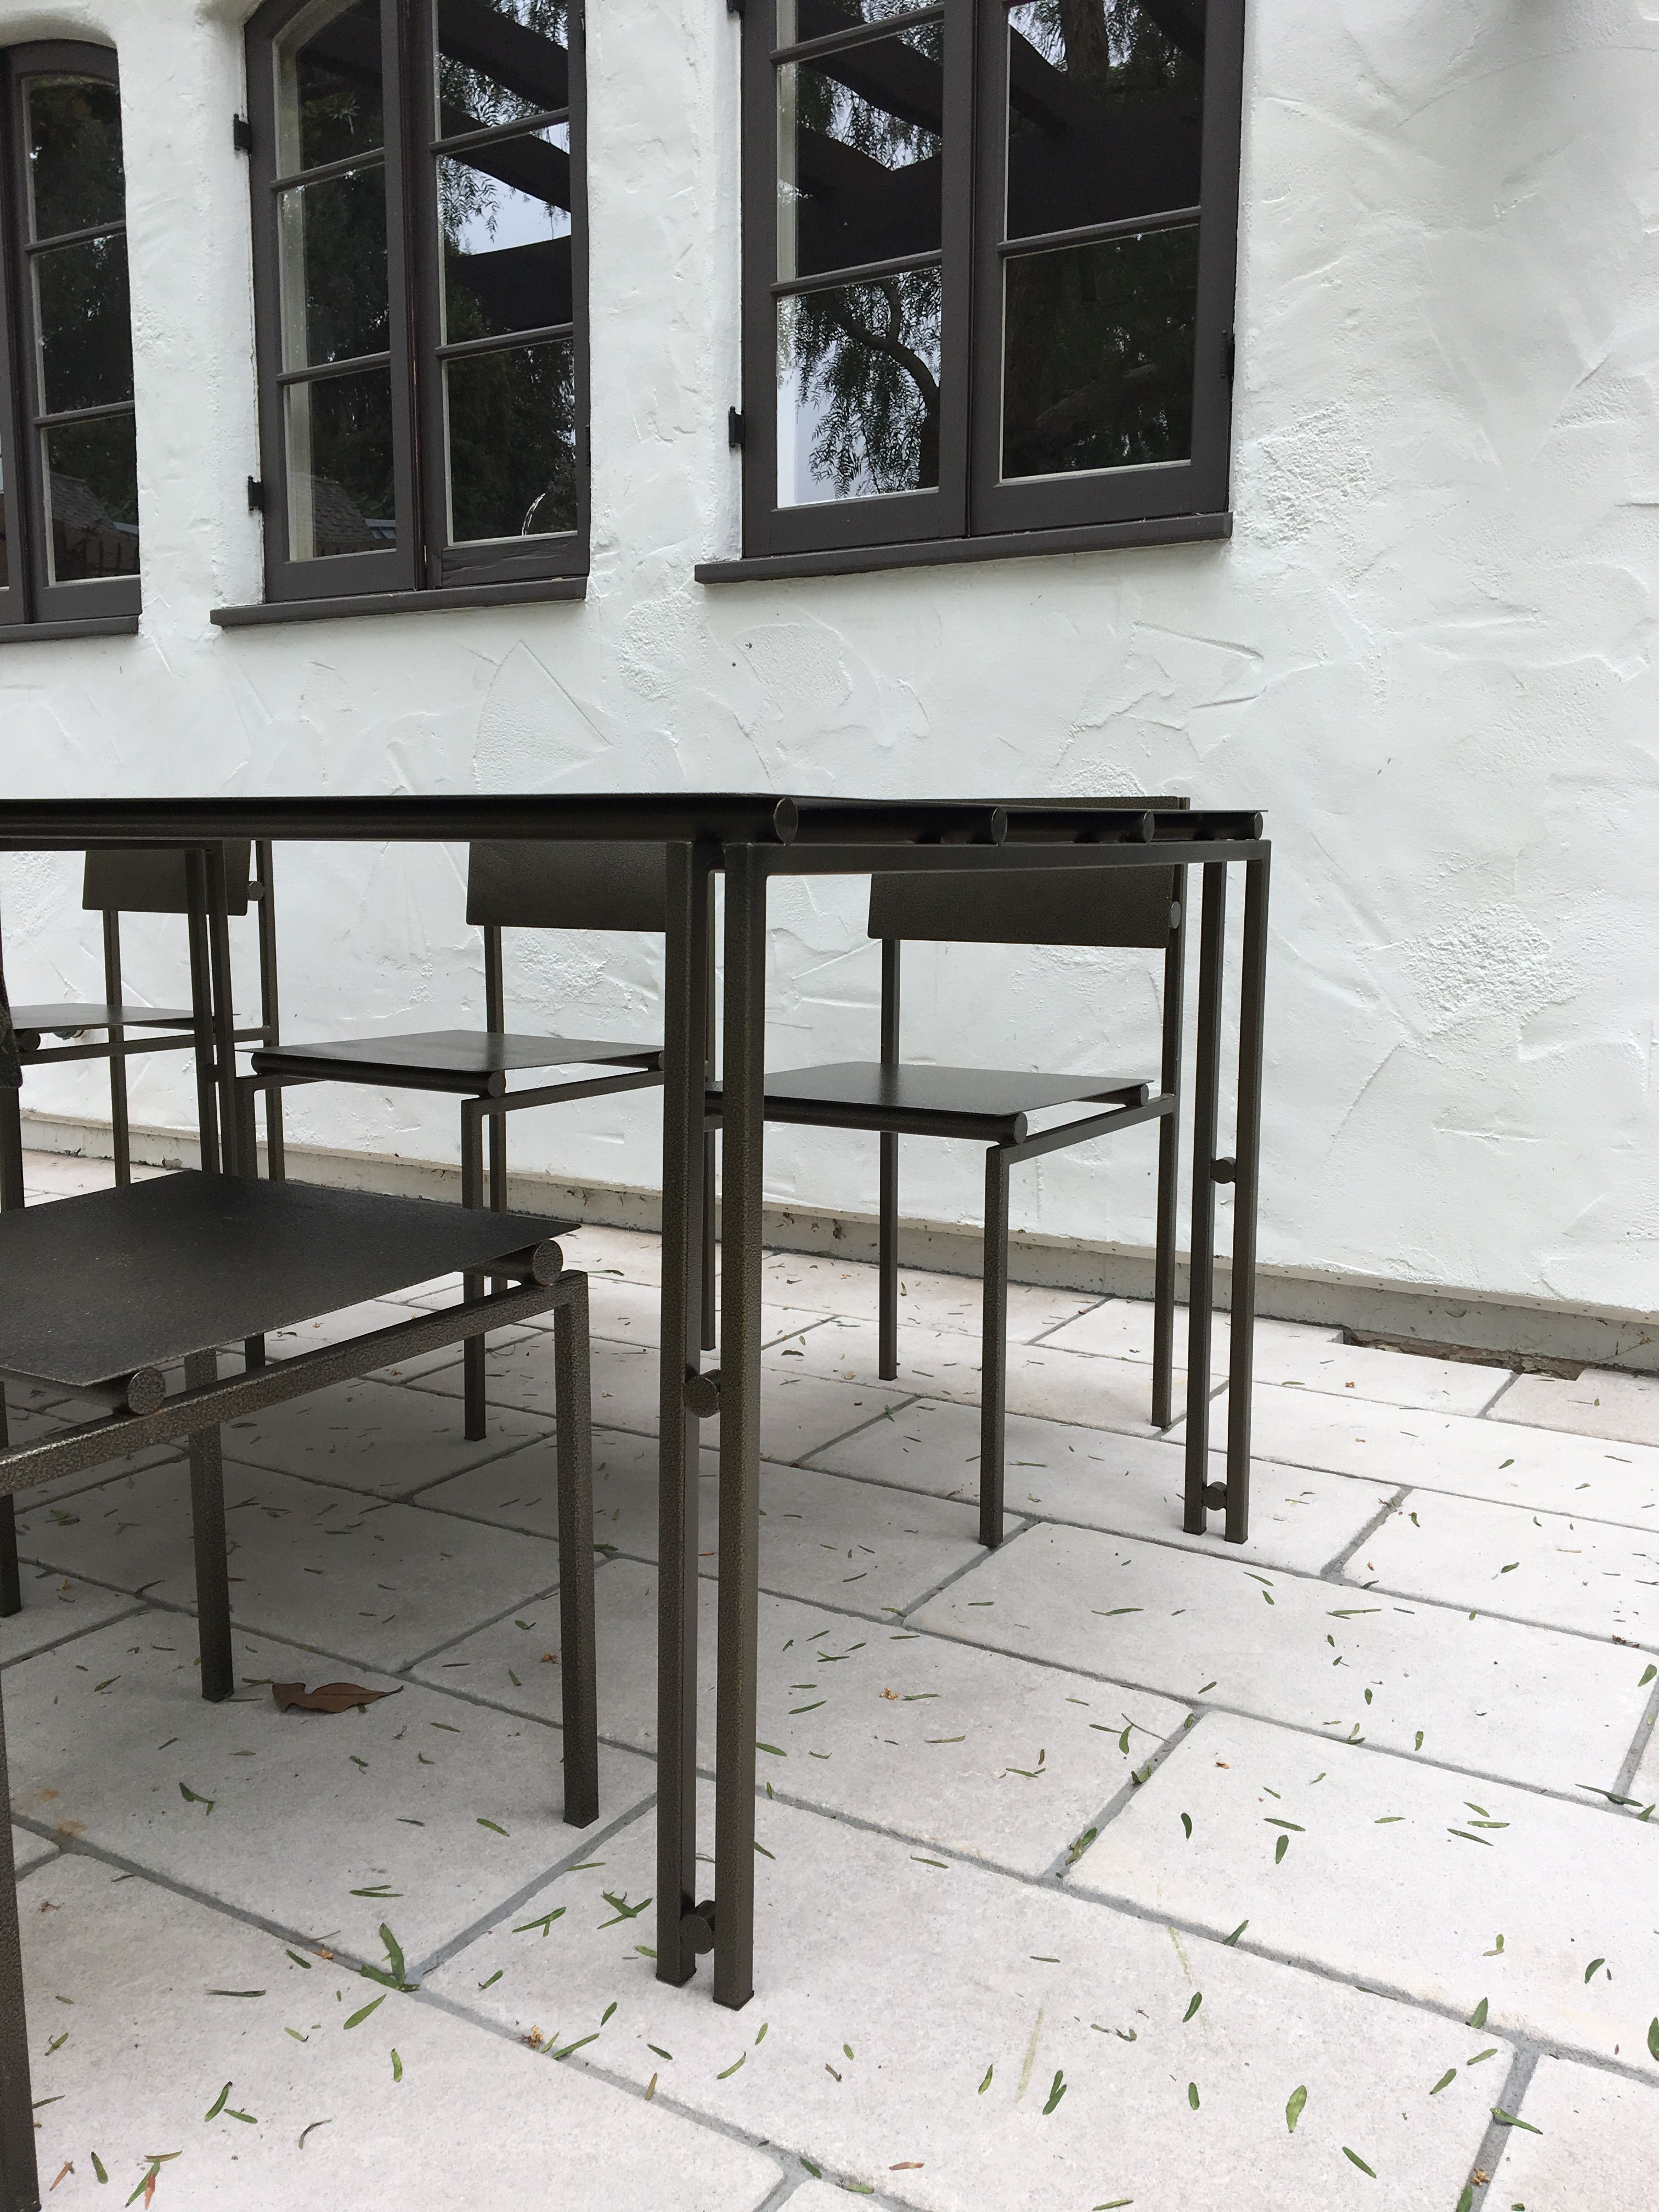 Suspension Metal Dining Table - Large Size product image 7